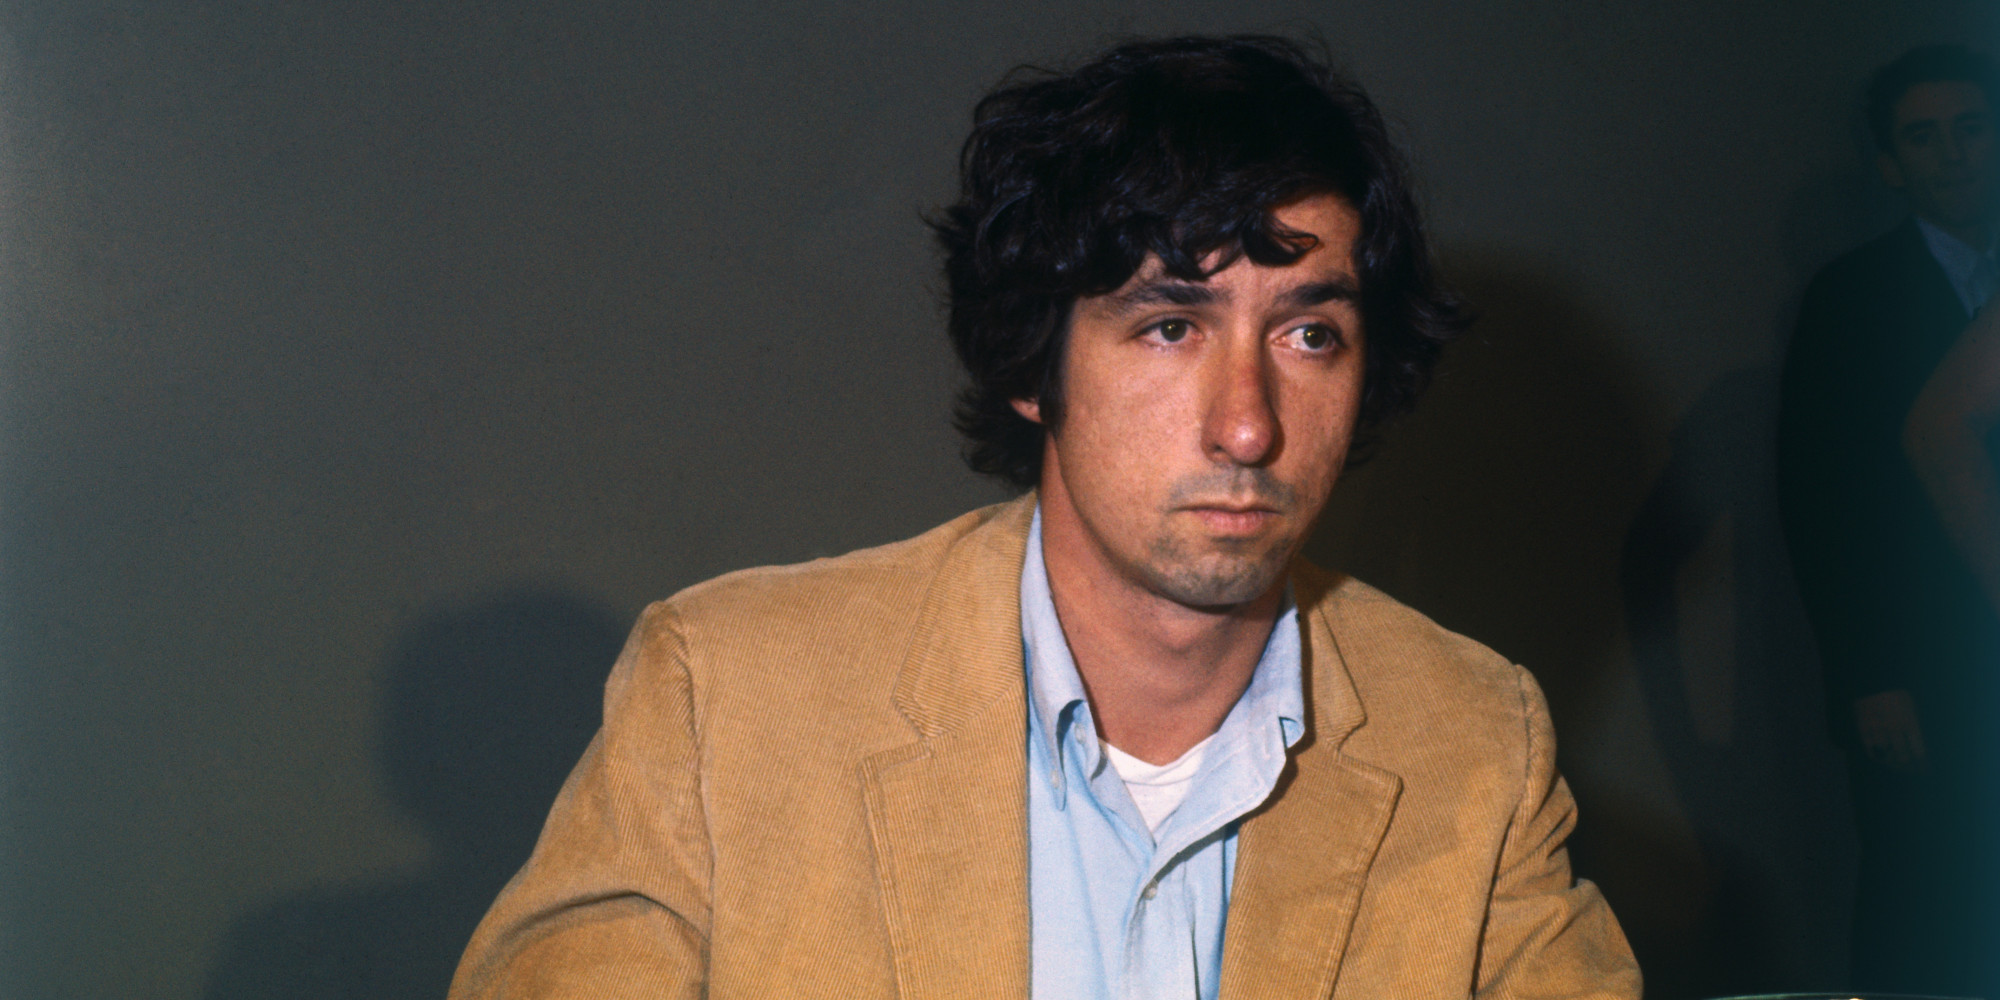 Tom hayden science writer